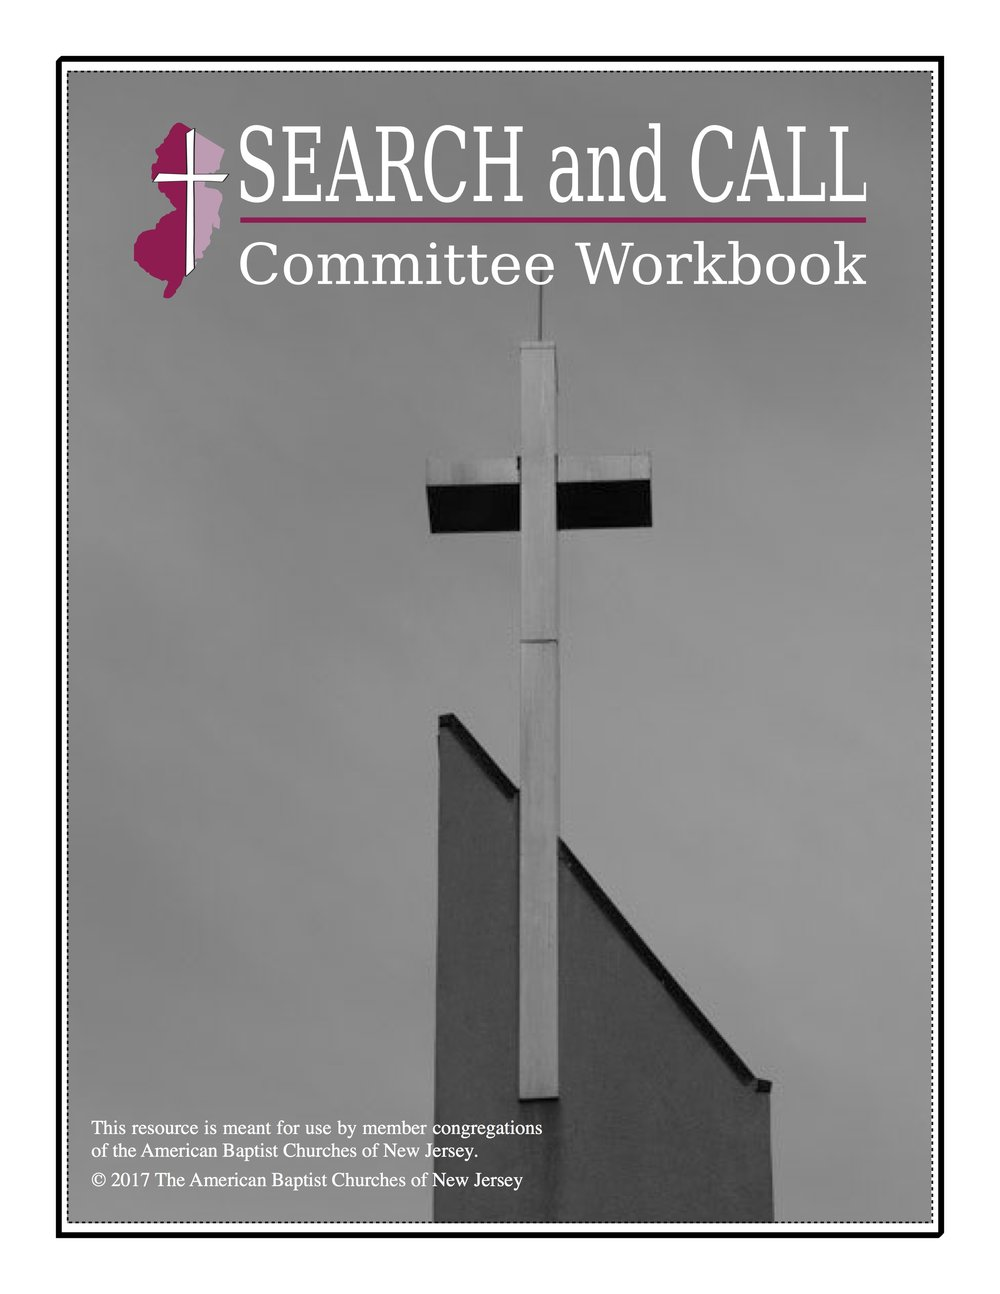 Search committee workbook cover